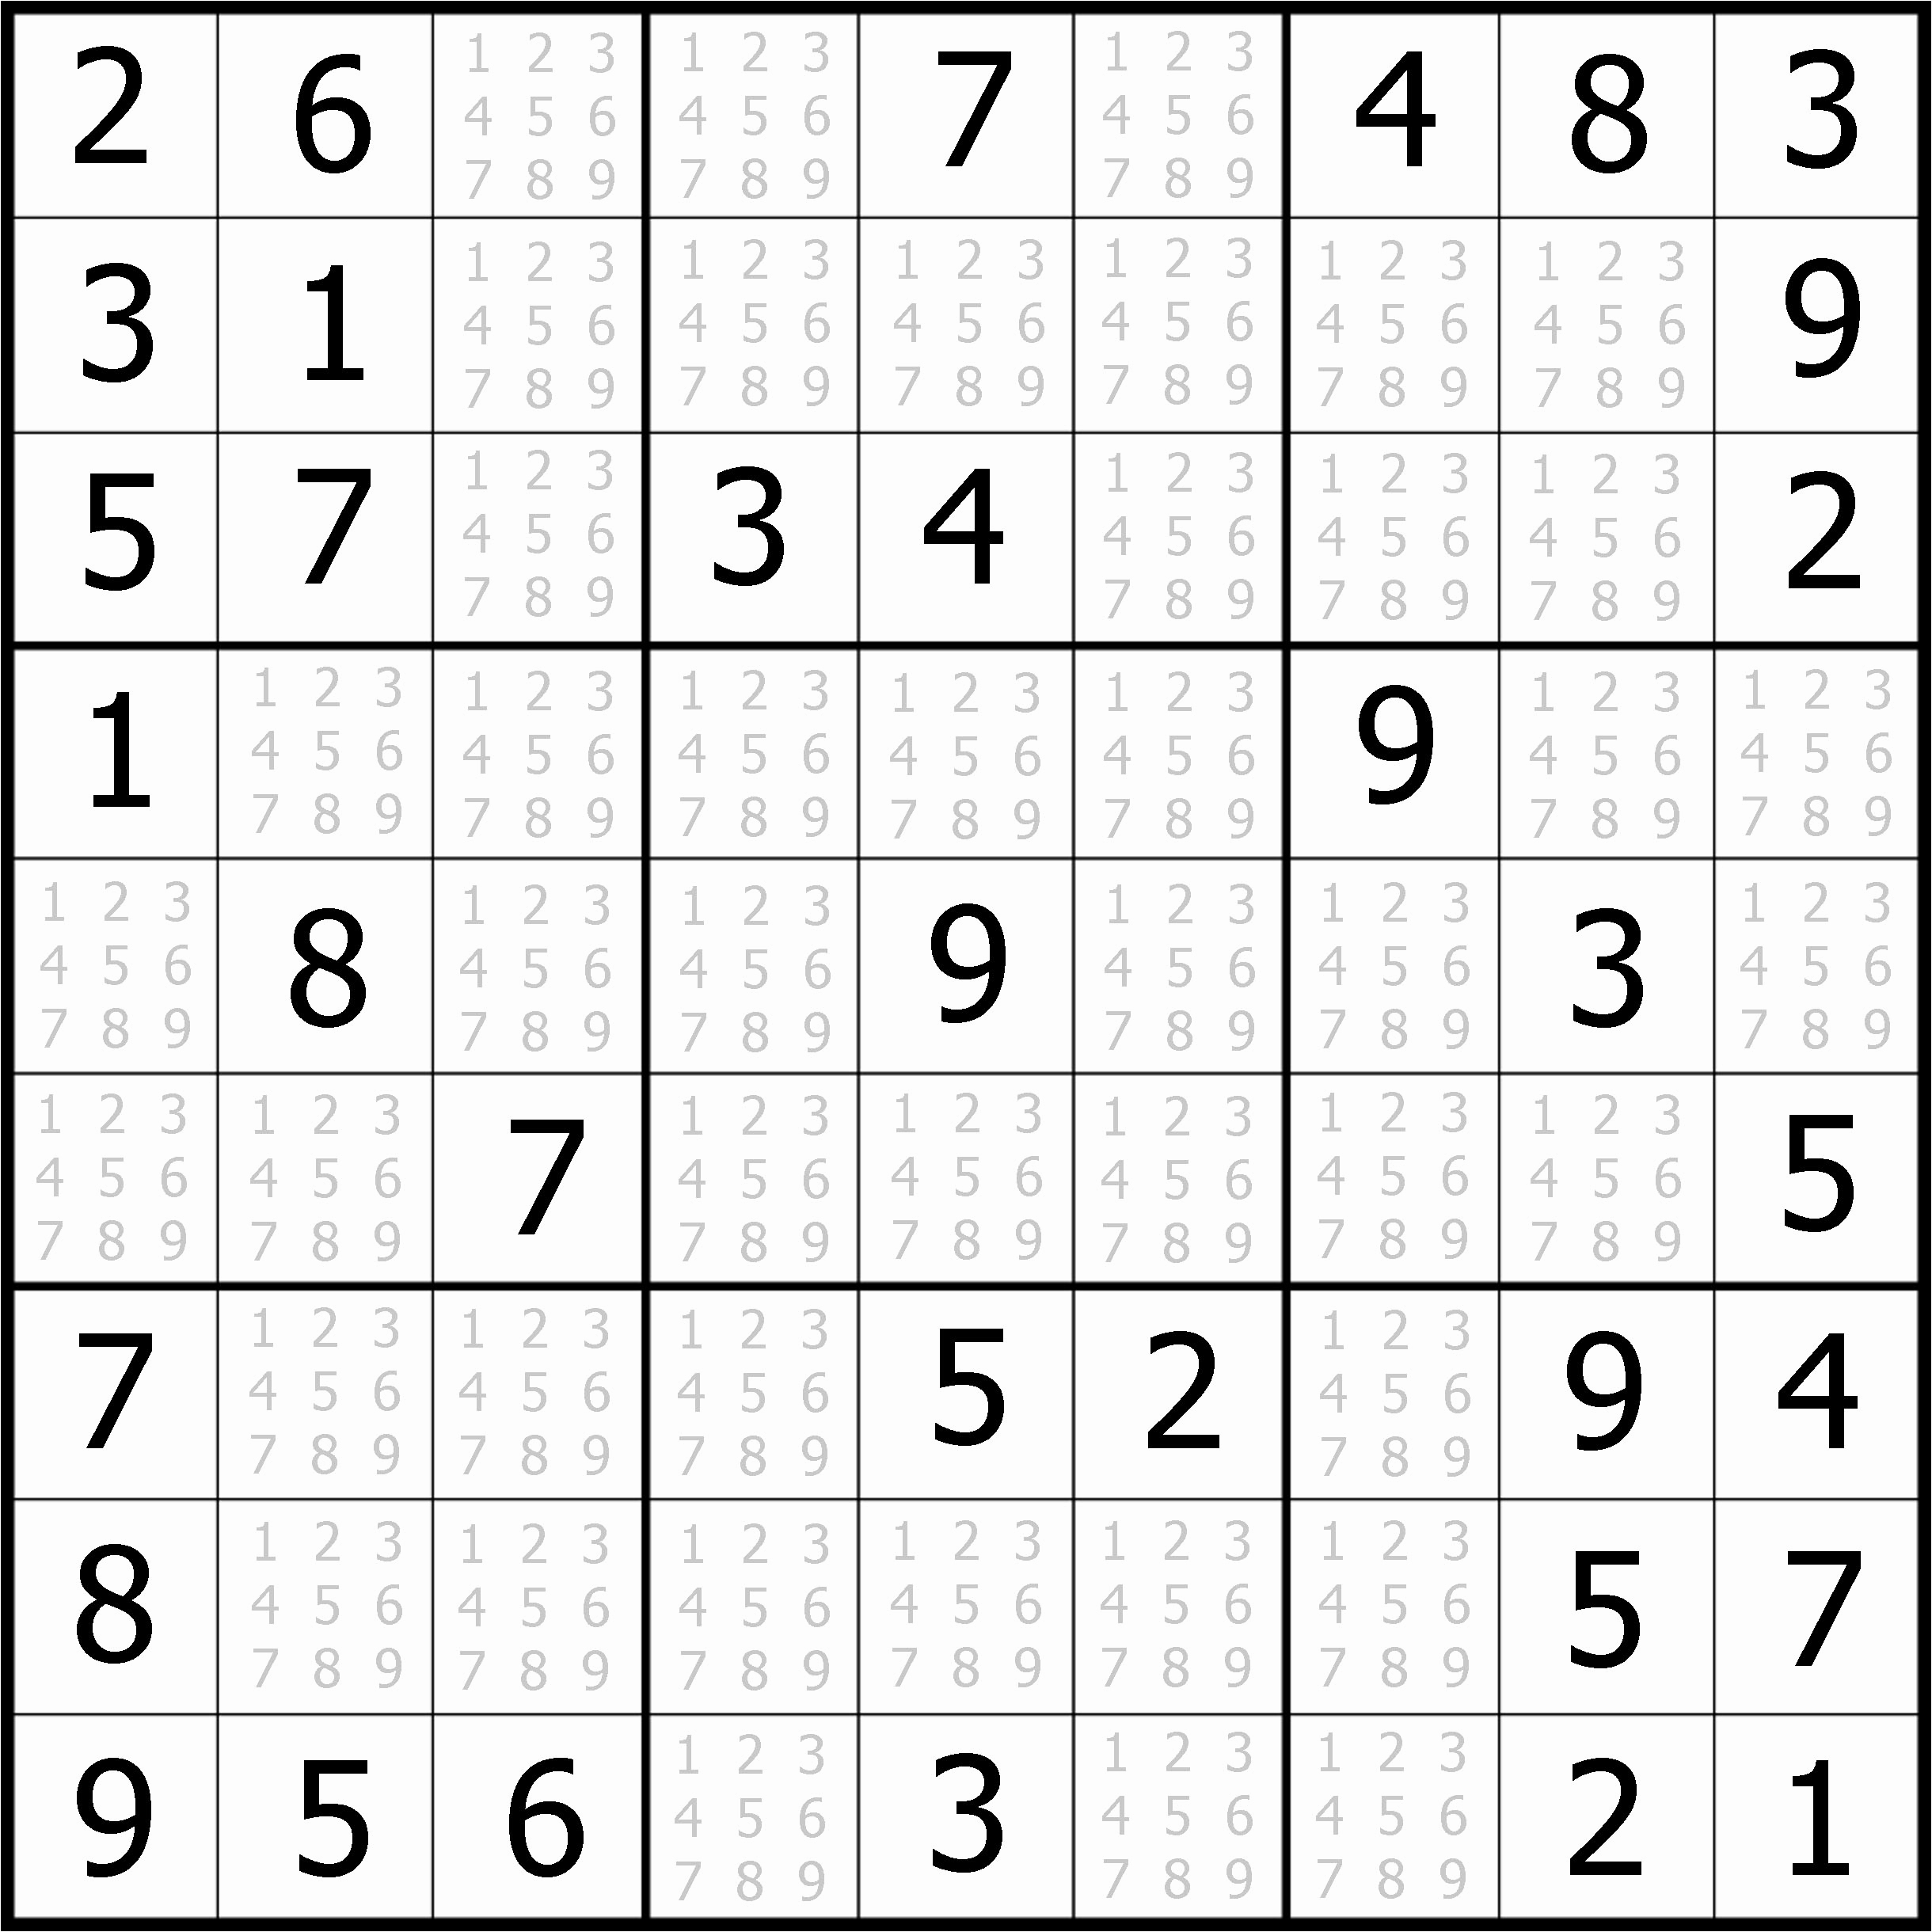 Easy Sudoku Puzzles To Print Free Download Featured Sudoku Puzzle To - Printable Sudoku Puzzles For Adults